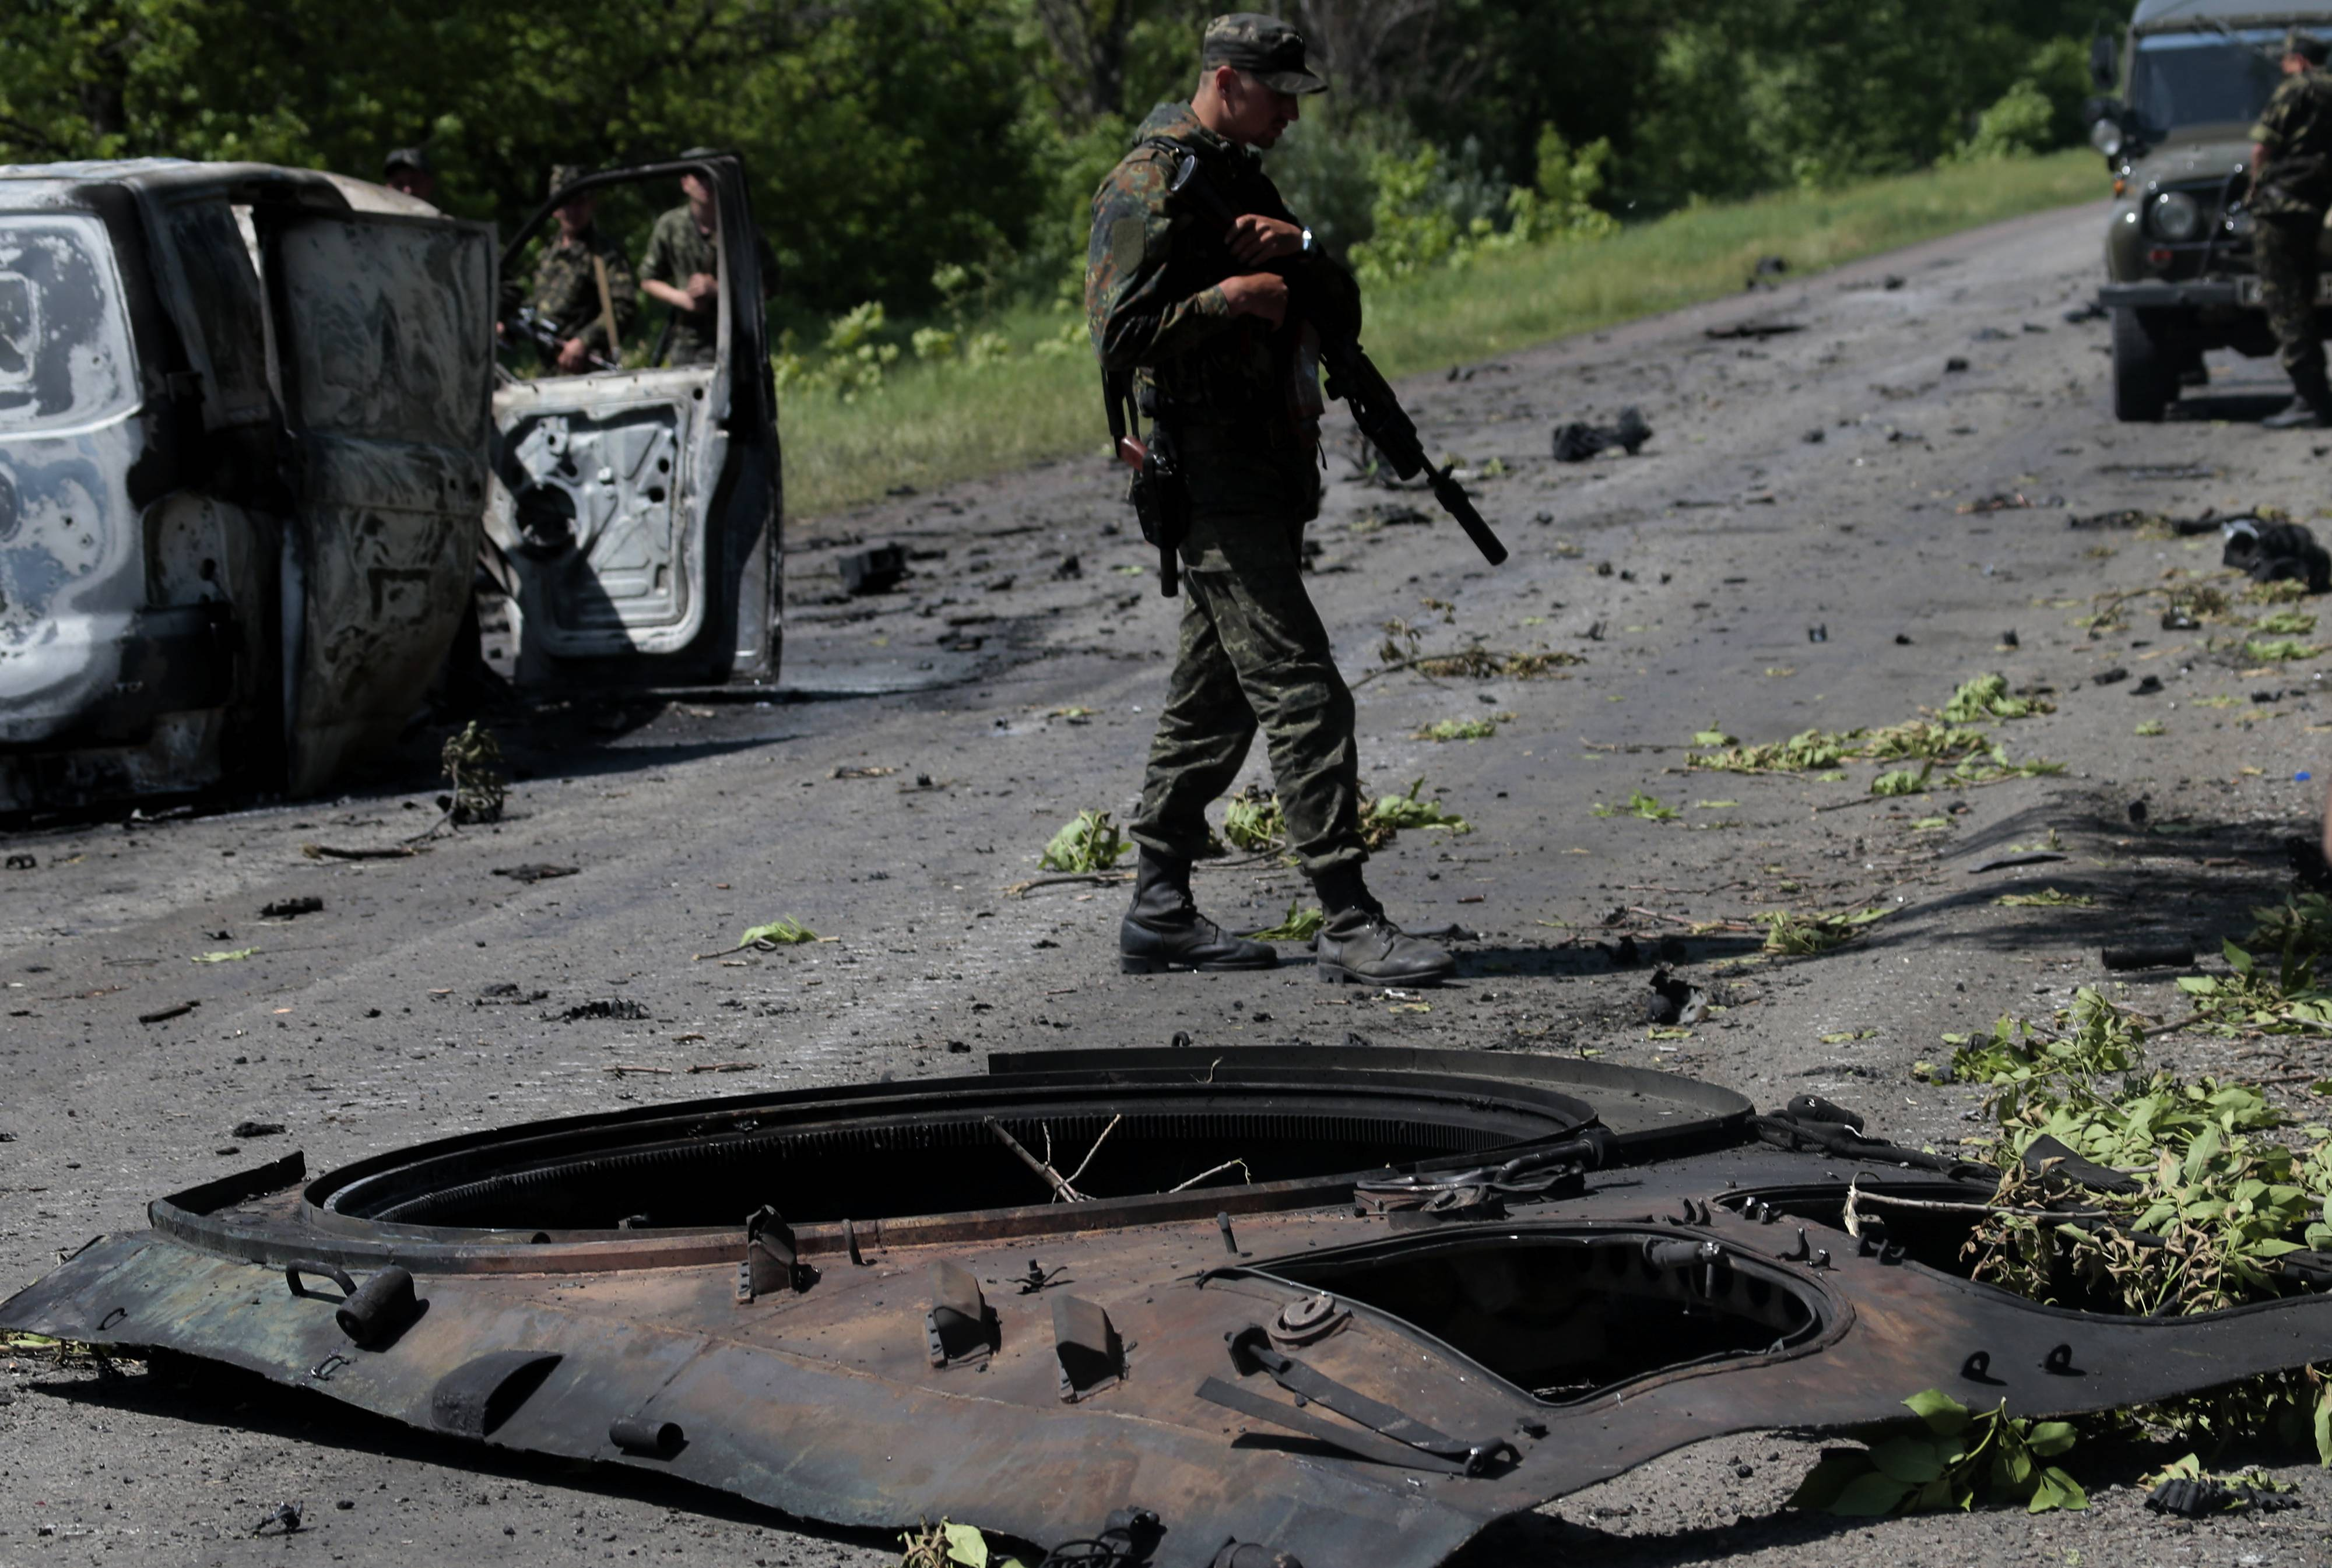 A Ukrainian soldier surveys the site of a battle near the village of Blahodatne, eastern Ukraine, Thursday, where 16 Ukrainian troops were killed and about 30 others were wounded when Pro-Russians attacked a military checkpoint.